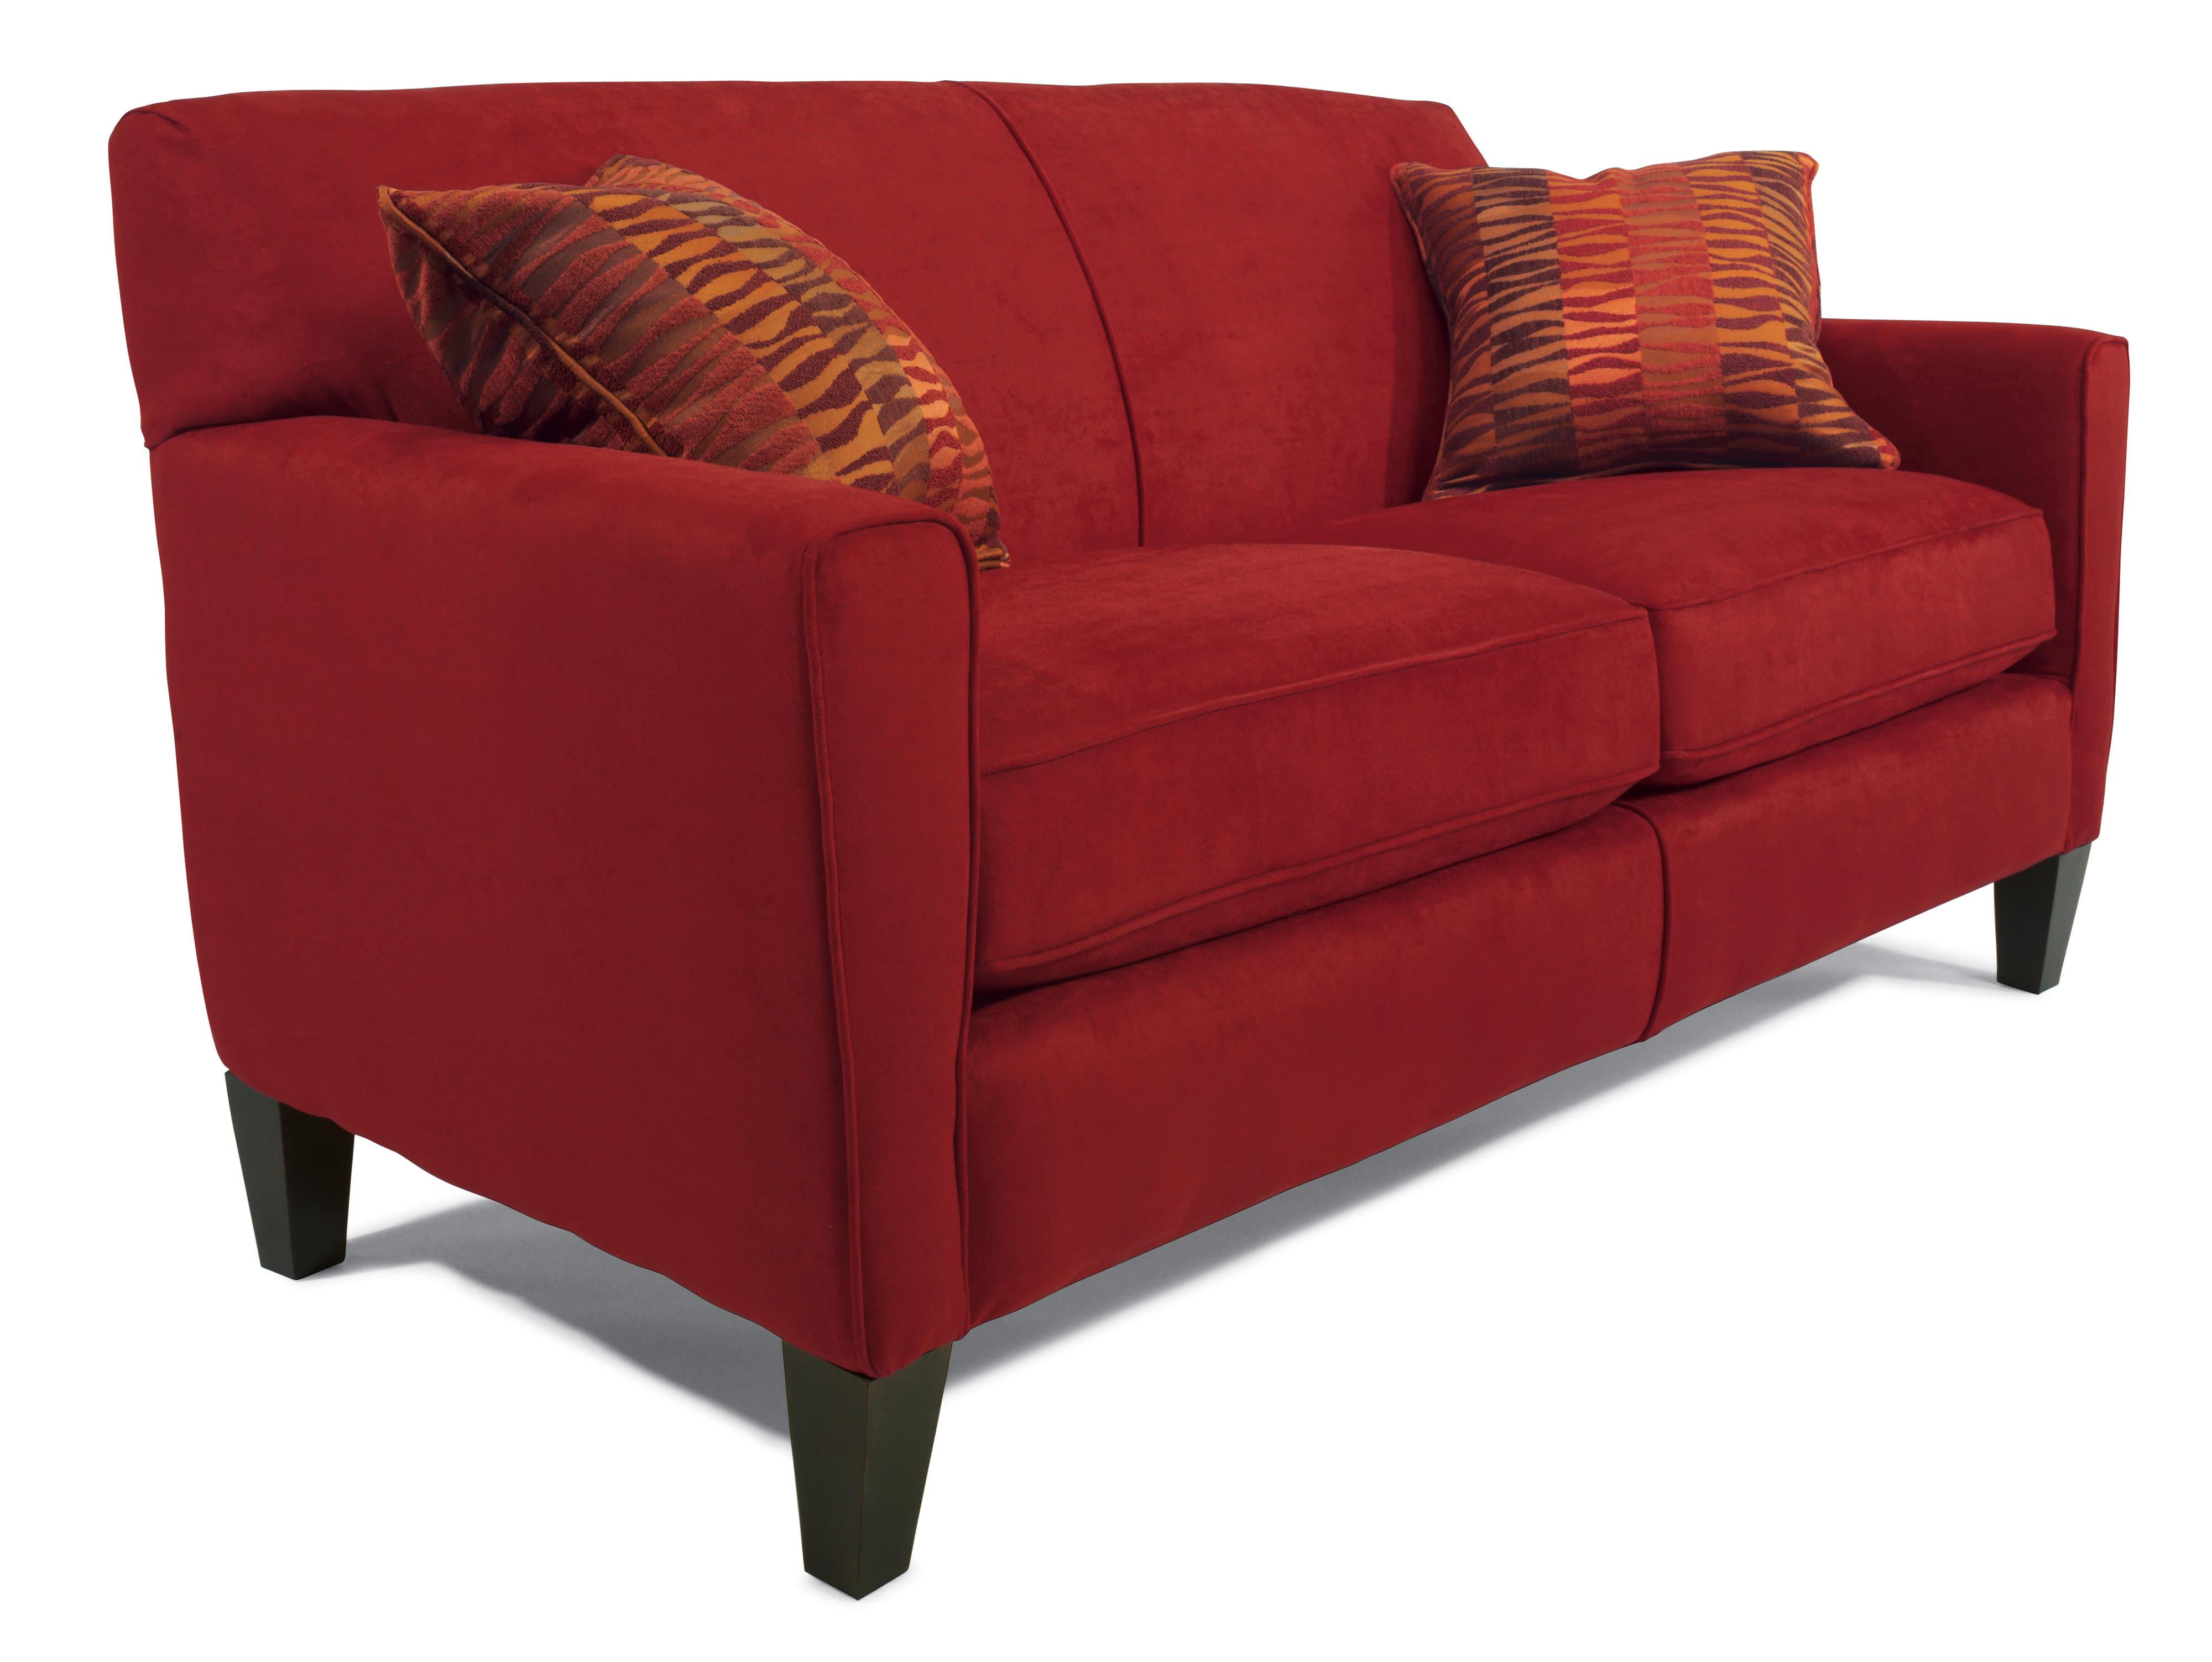 """Digby 70"""" Sofa w/ Two Cushions by Flexsteel at Steger's Furniture"""